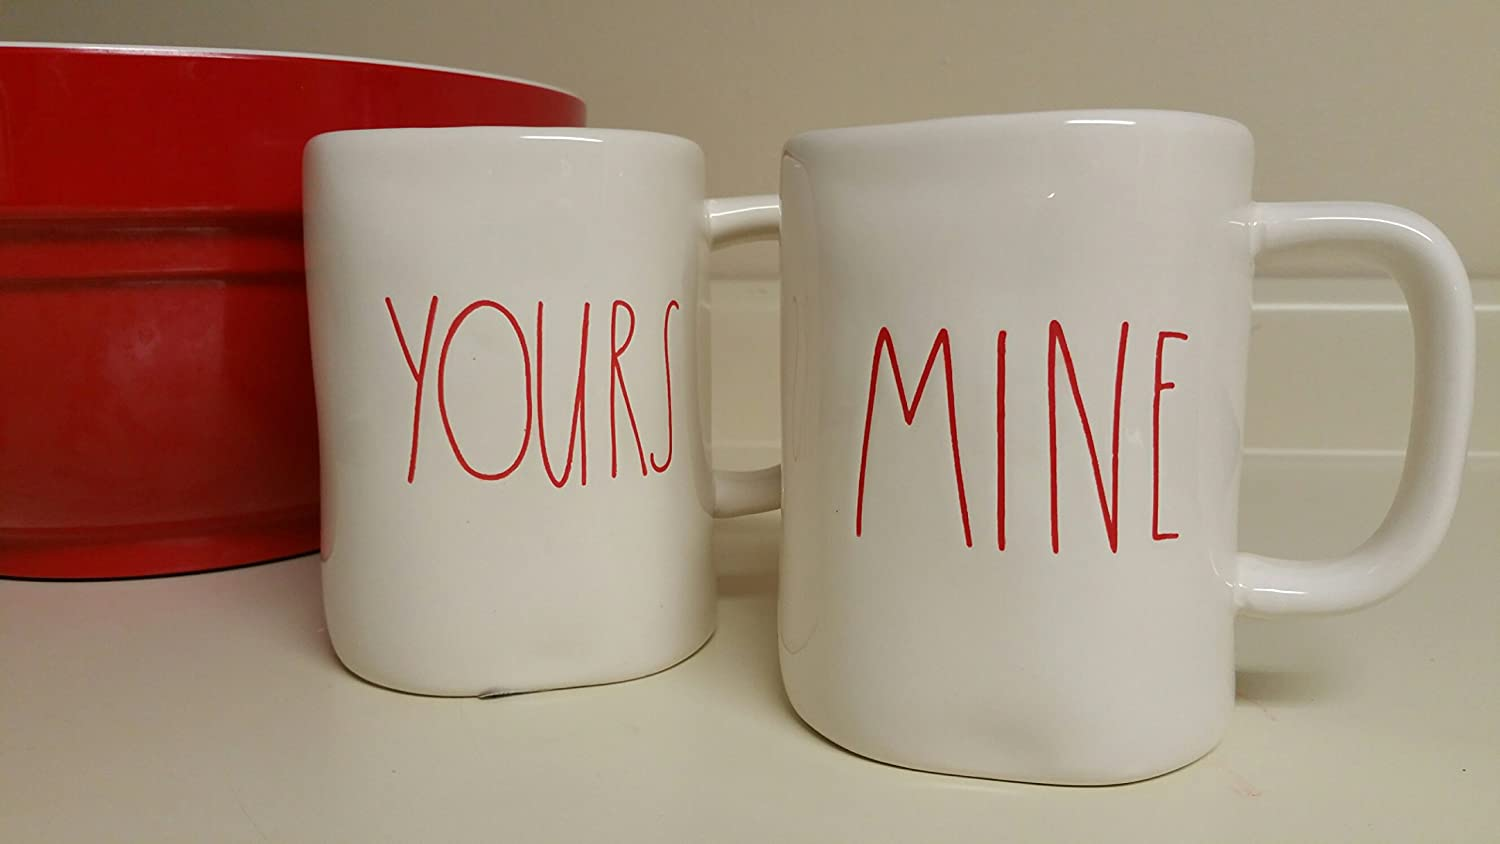 7128da23948 Rae Dunn Magenta Artisan Collection Ceramic Mugs Yours and Mine (Set of 2)  - Cream/Red Writing